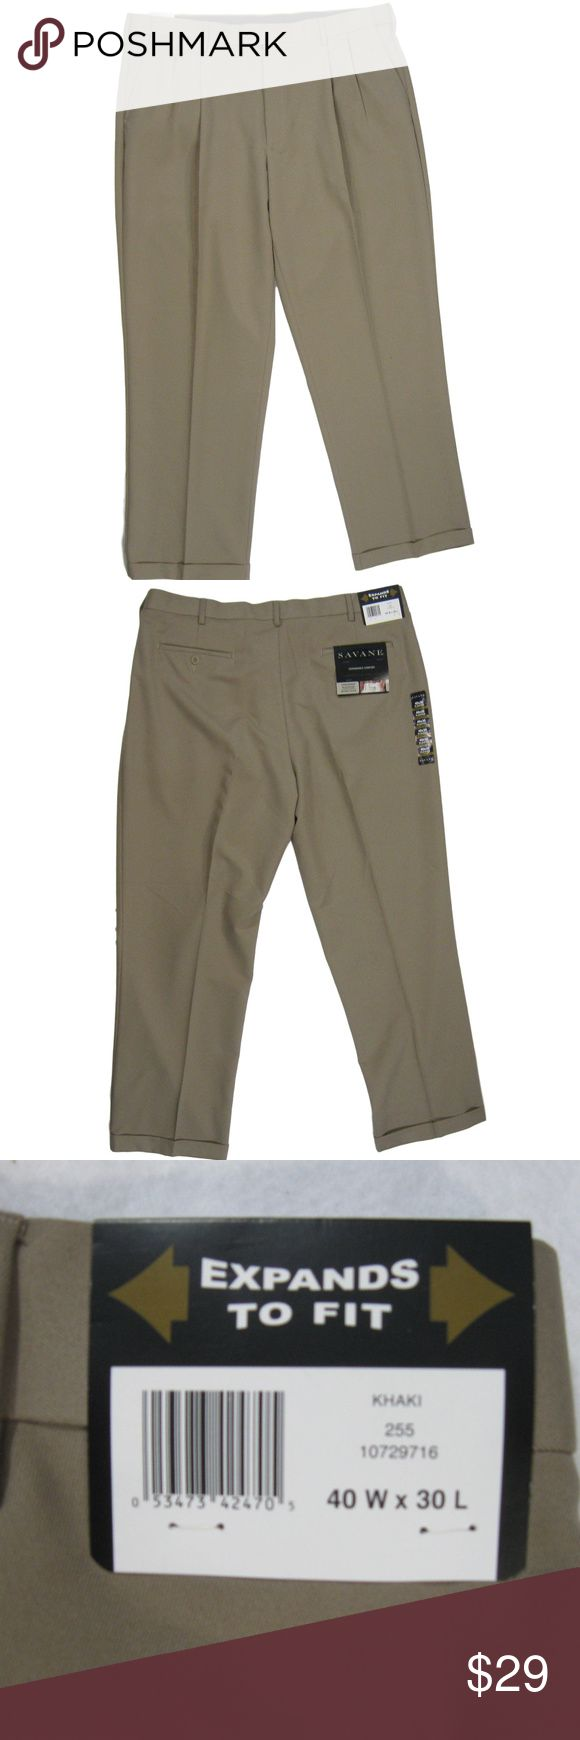 """Savane Mens Expandable Waistband Pants Khaki 40-30 Up for sale is a pair of Savane Mens Expandable Waistband Double Pleated Pants Khaki Size 40-30 with Cuffs.  Please see below for measurements and other details.  Pants are new with tags. Measurements (laying flat) Inseam Measurement Approx. 30.25"""" Front Rise Measurement Approx. 12.5"""" Leg Opening Measurement  Approx. 9"""" Waist Approx. 20"""" Wrinkle Free Stain Release Double Pleat Machine Washable 100% Polyester savane Pants Dress"""